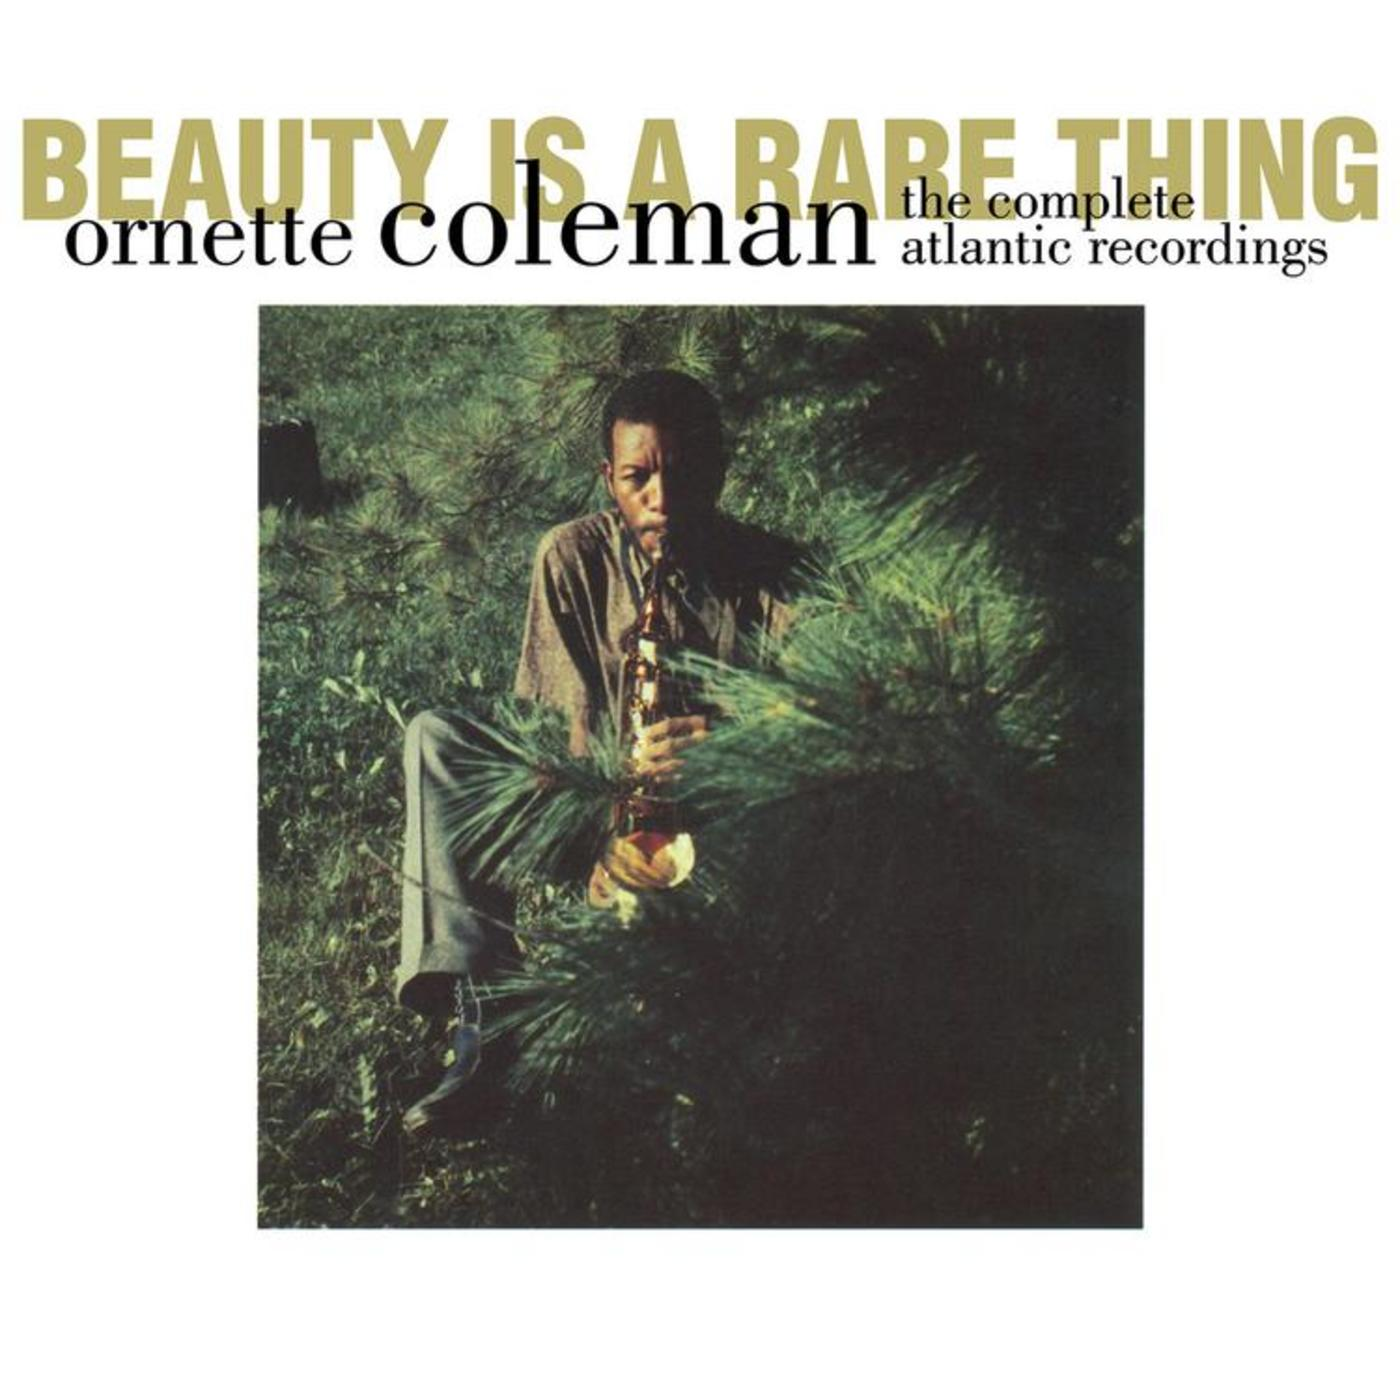 Ornette Coleman: Beauty Is A Rare Thing - The Complete Atlantic Recordings